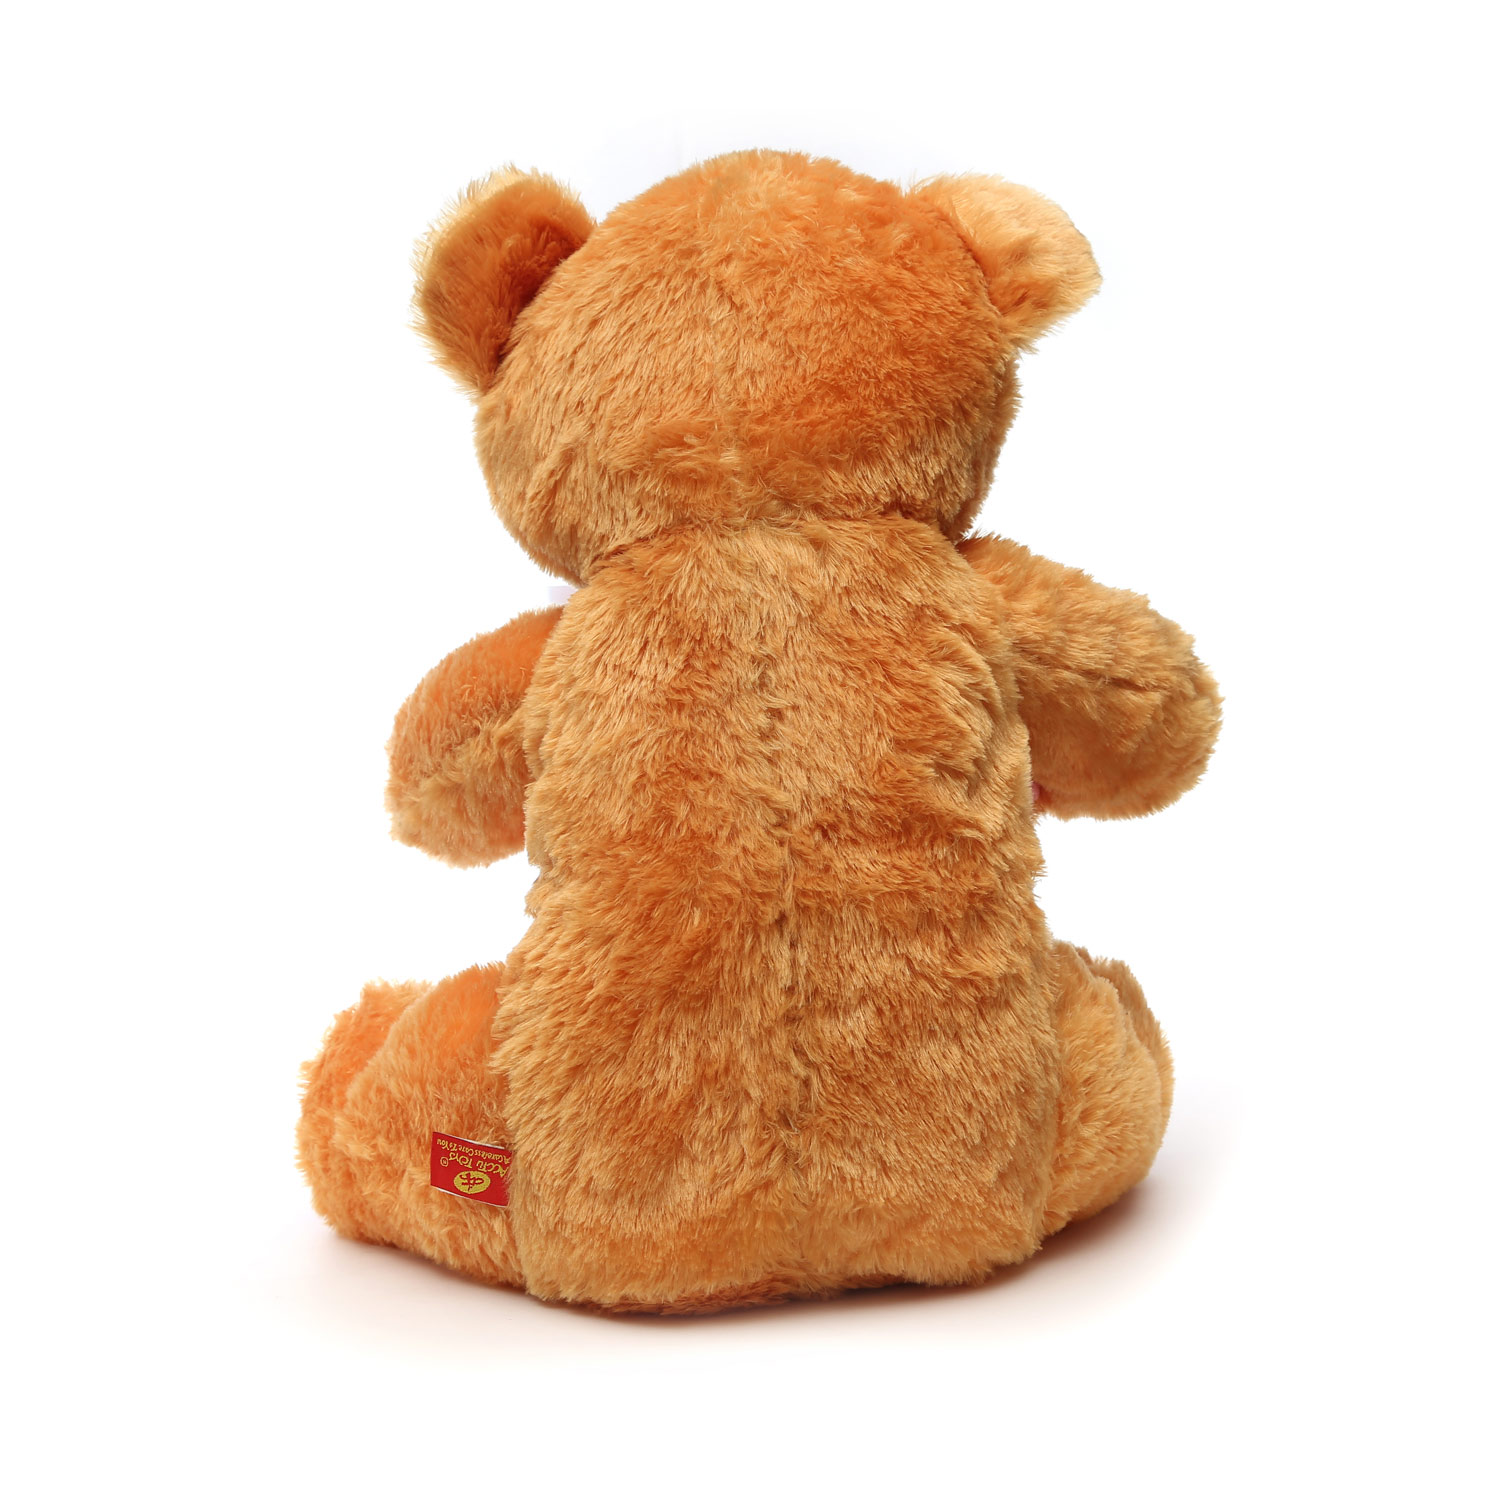 AT-1115-BROWN DIL TEDDY 56CM